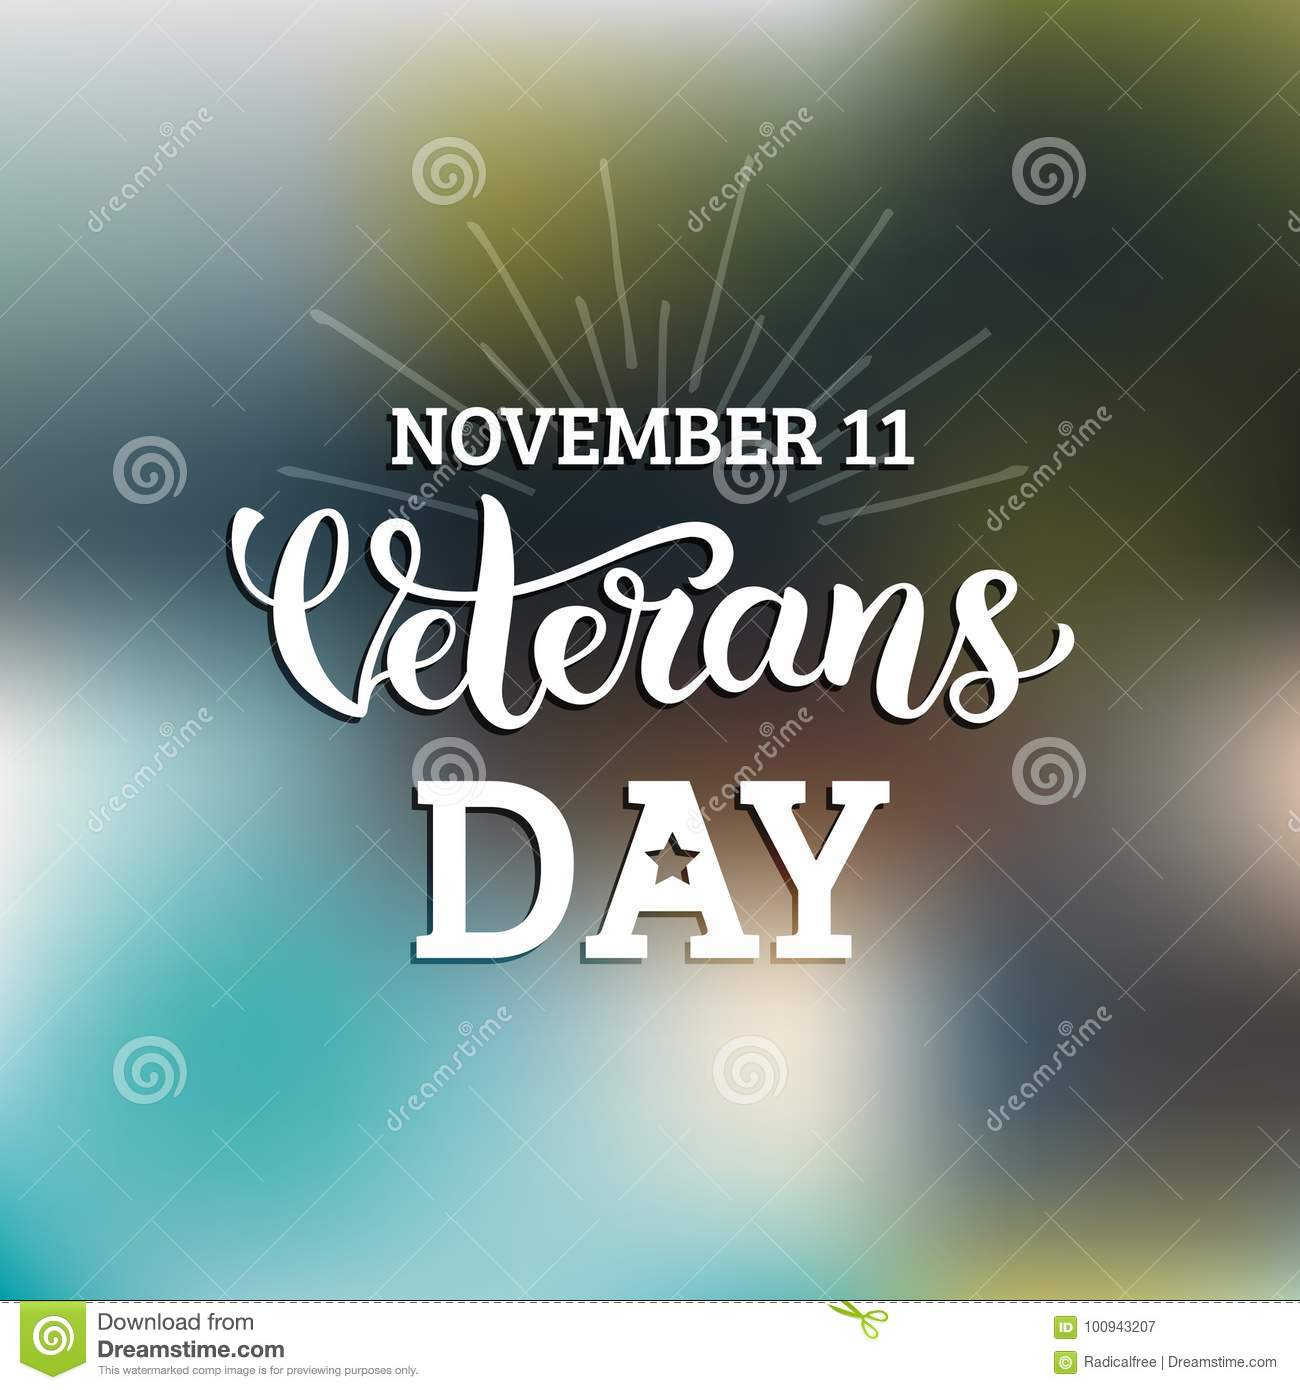 Vector illustration with happy veterans day lettering november 11 download vector illustration with happy veterans day lettering november 11 holiday background celebration poster m4hsunfo